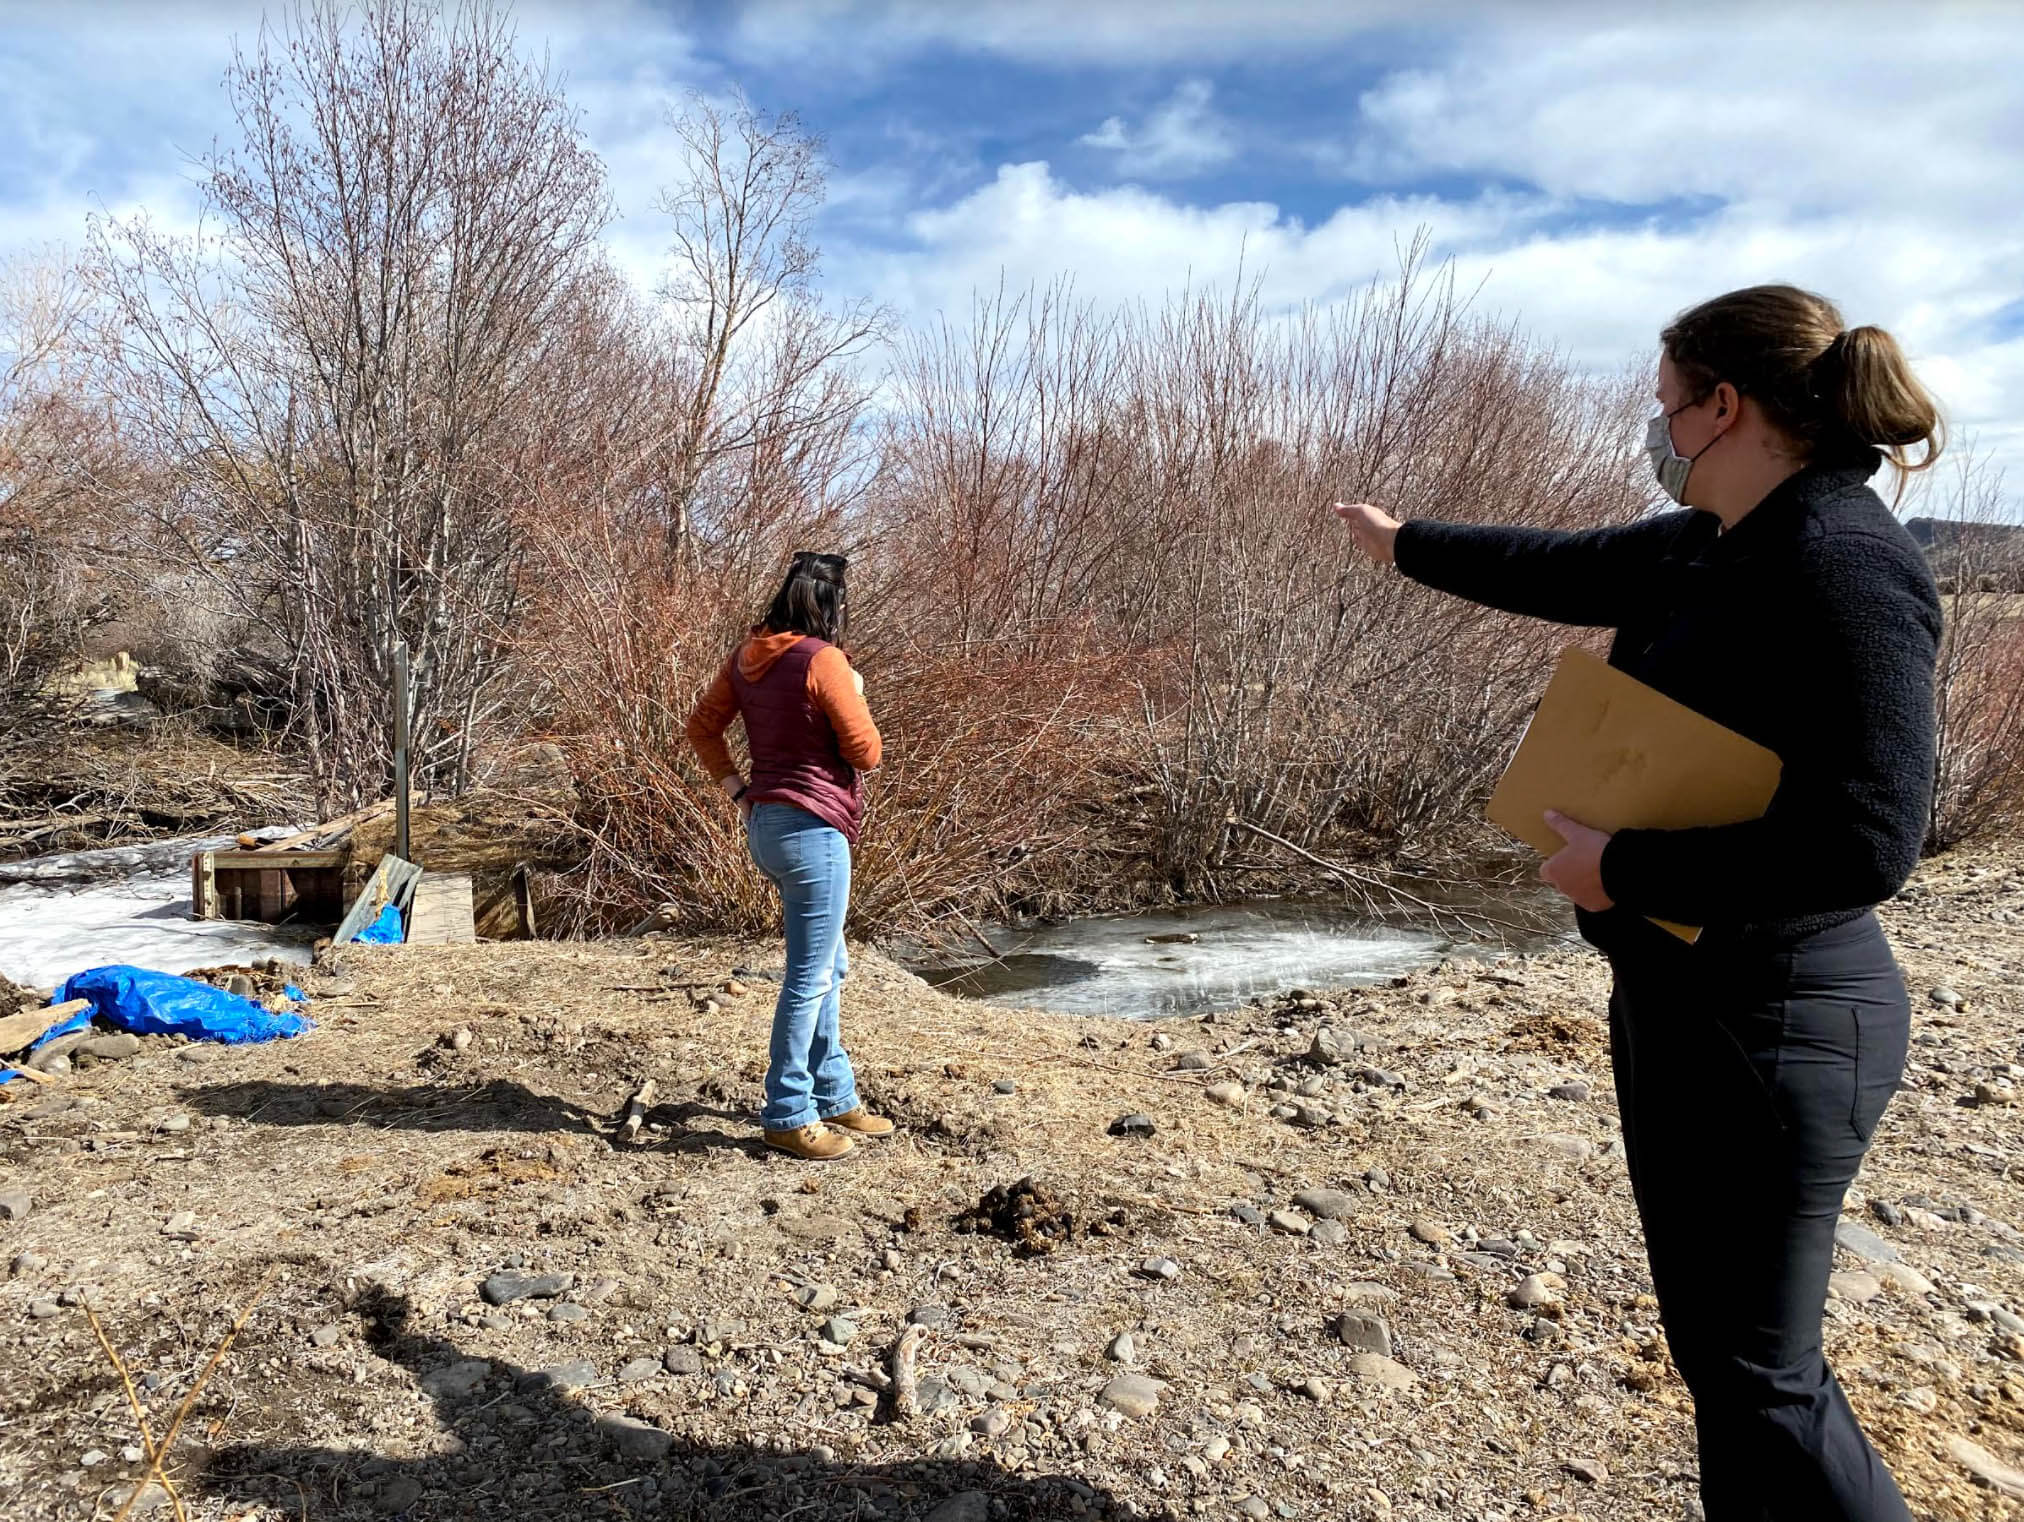 Emily (left) and Hallie Flynn (right) discussing the water control structure that needs to be replaced to better manage water flows to the meadows